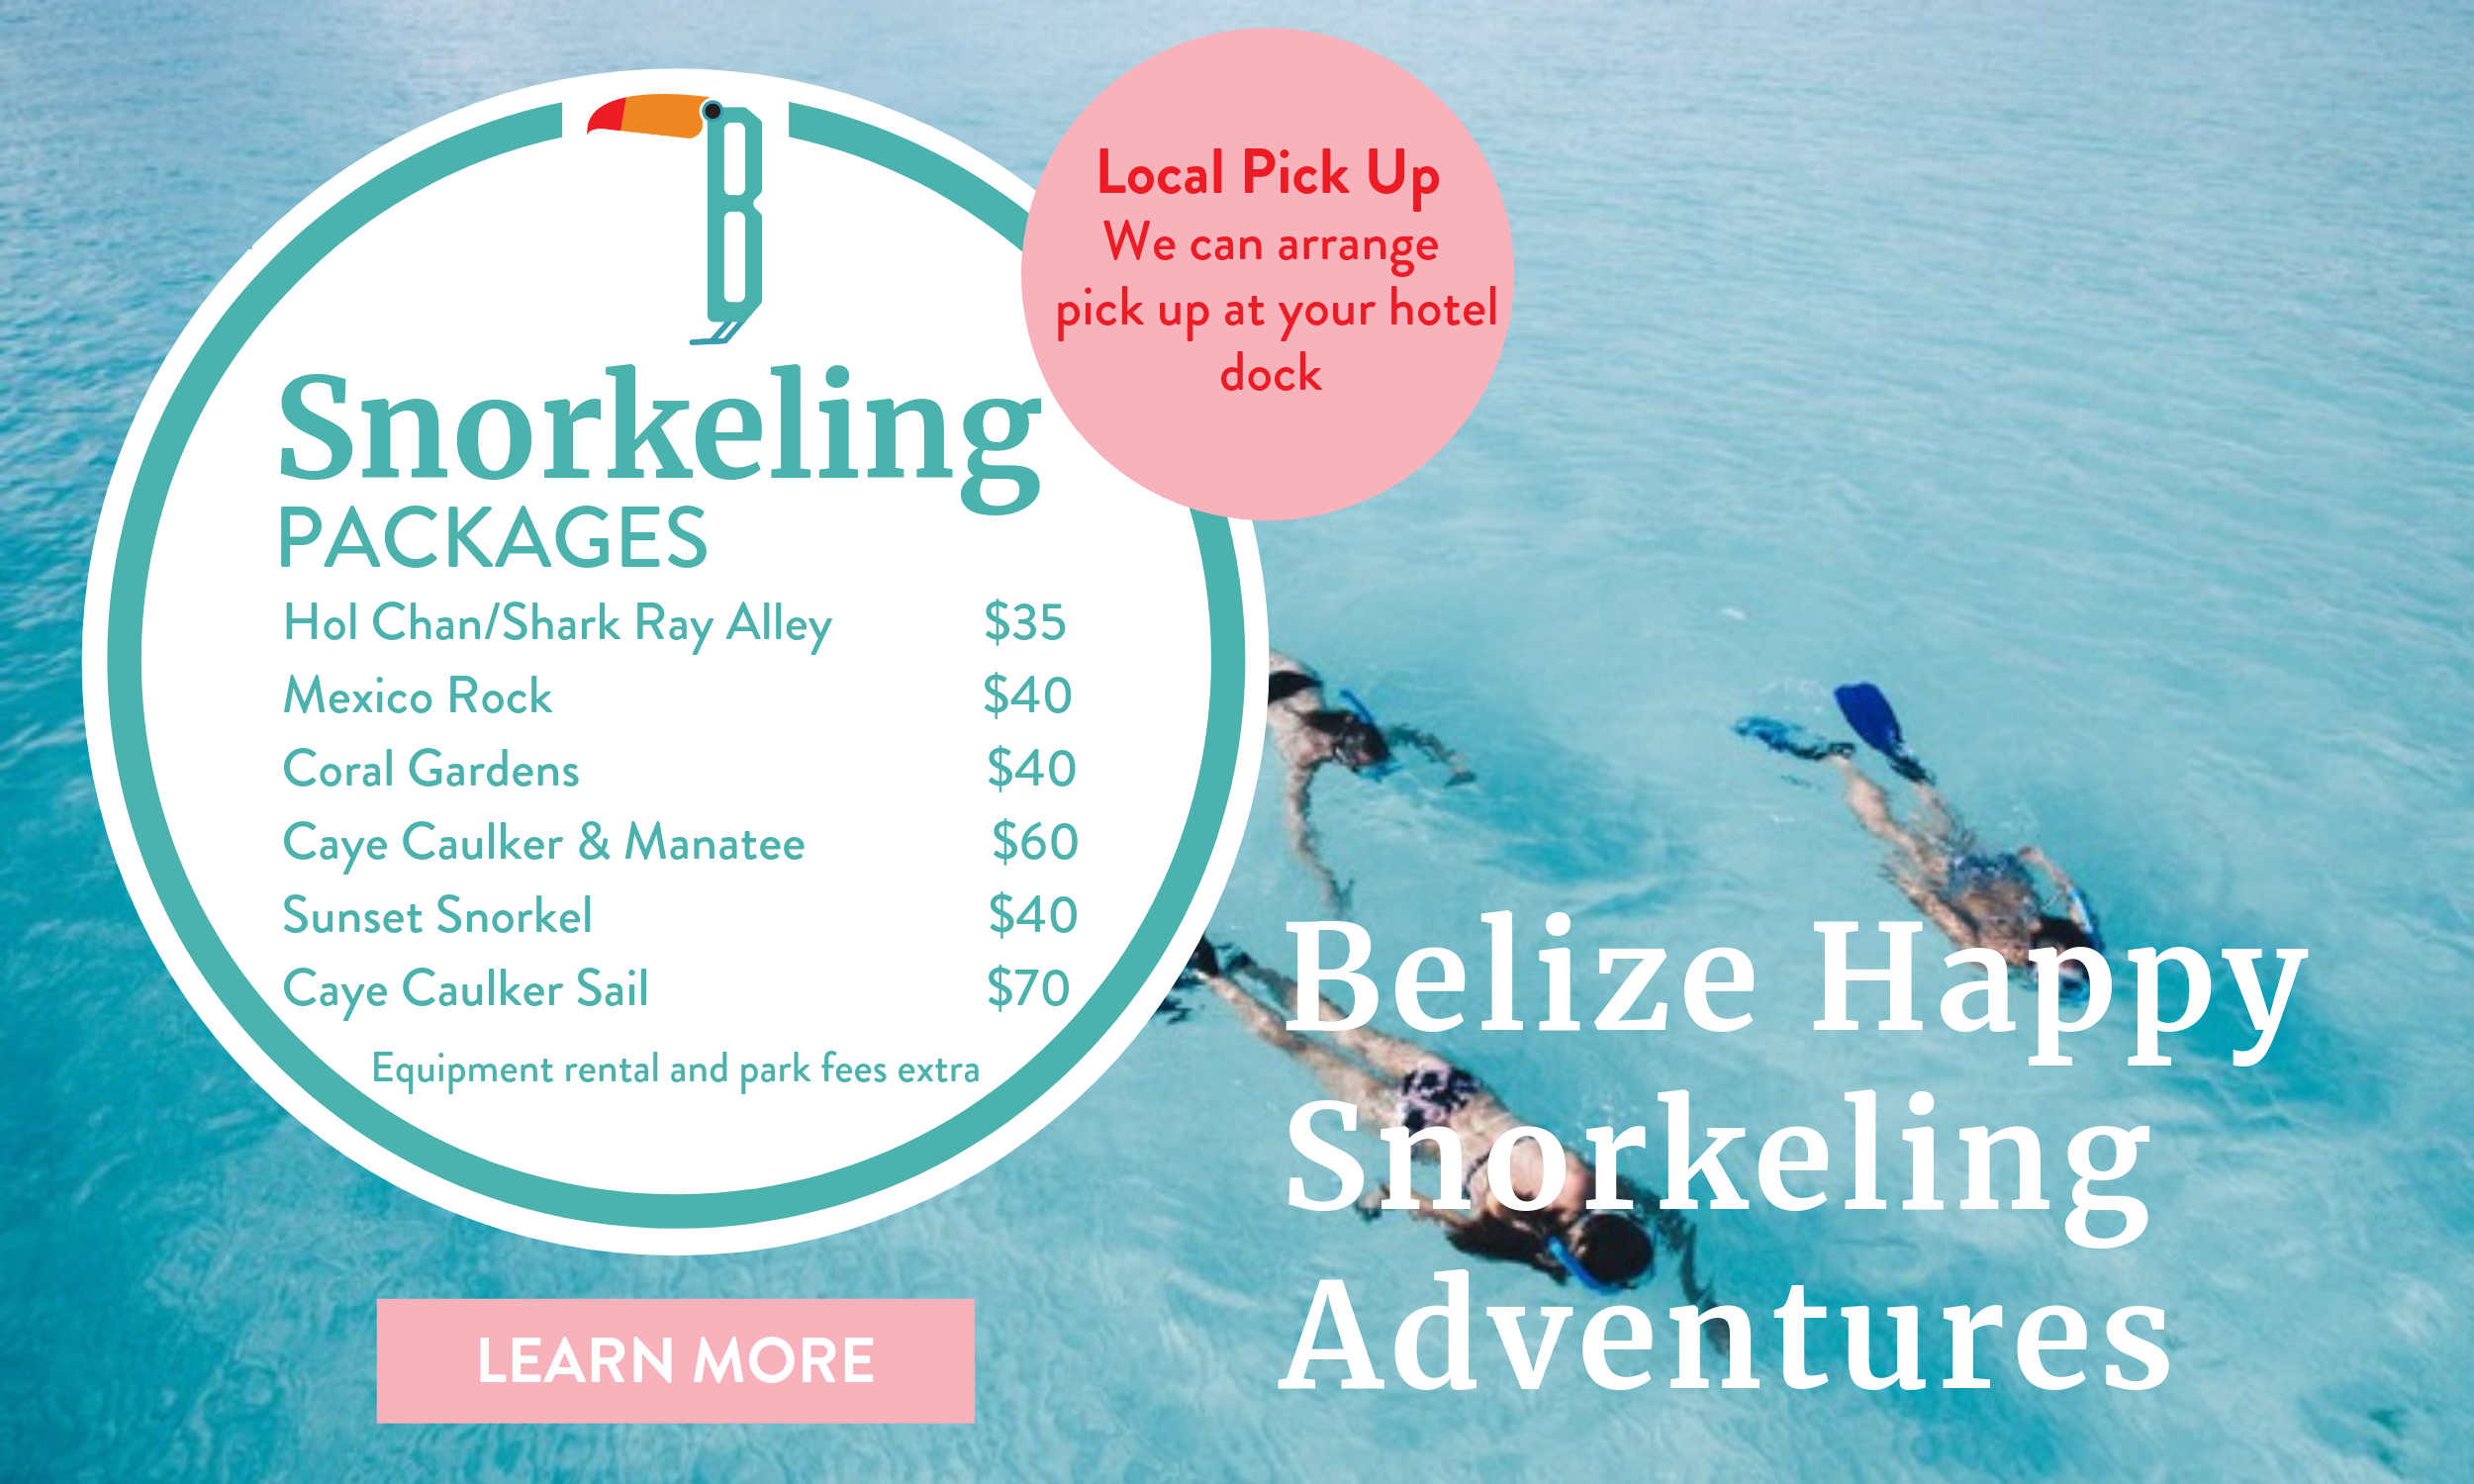 Snorkeling Tour Packages - Final.png